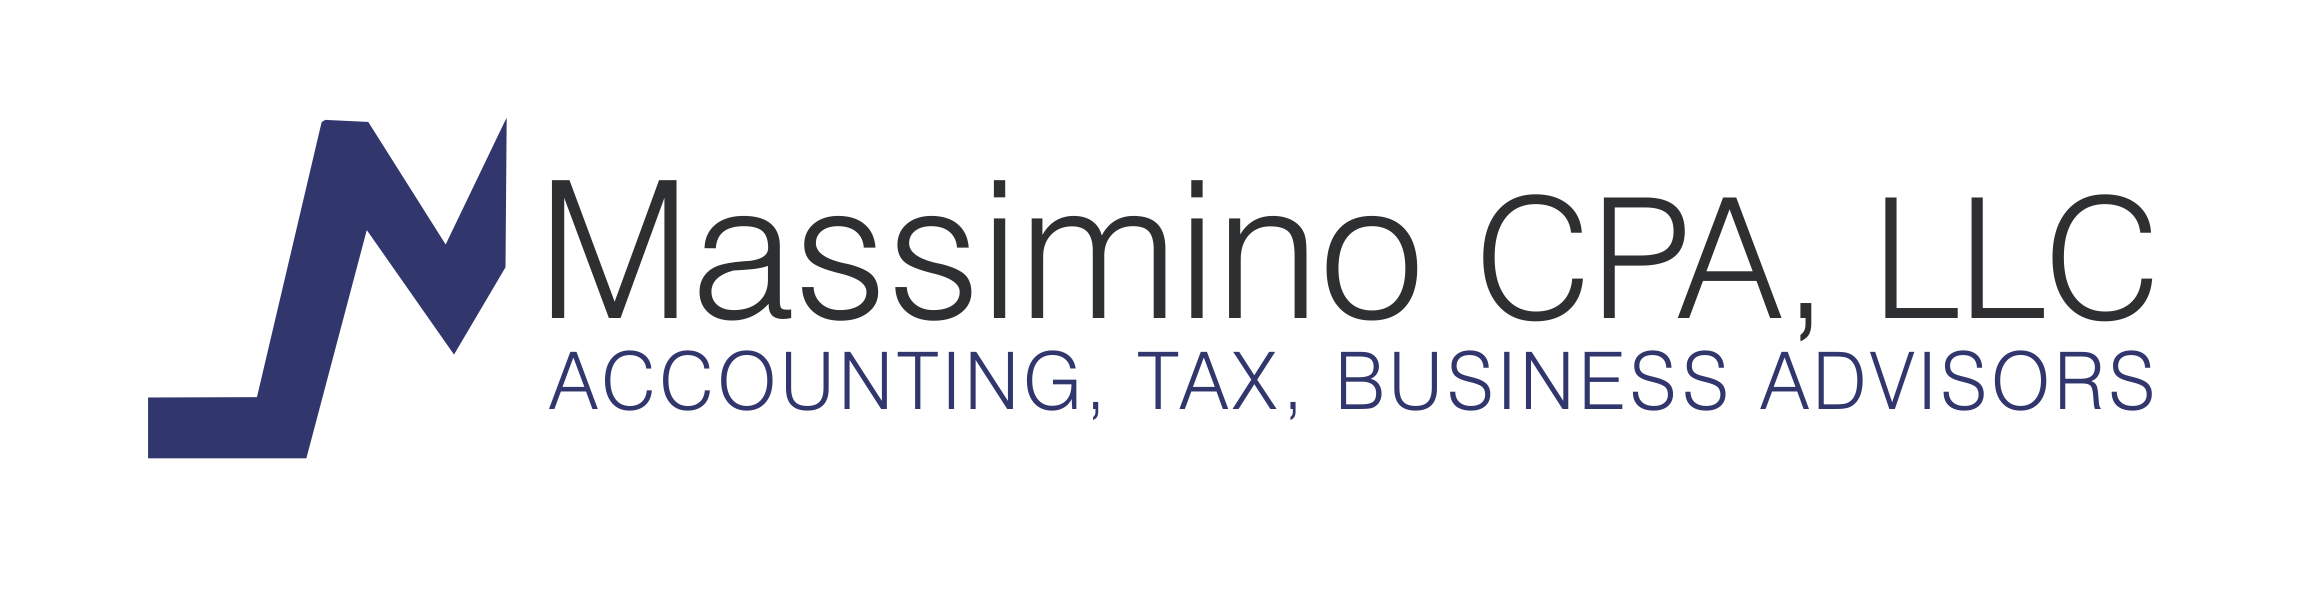 Lowell, MA CPA Firm | IRS Tax Forms and Publications Page | Massimino CPA, LLC